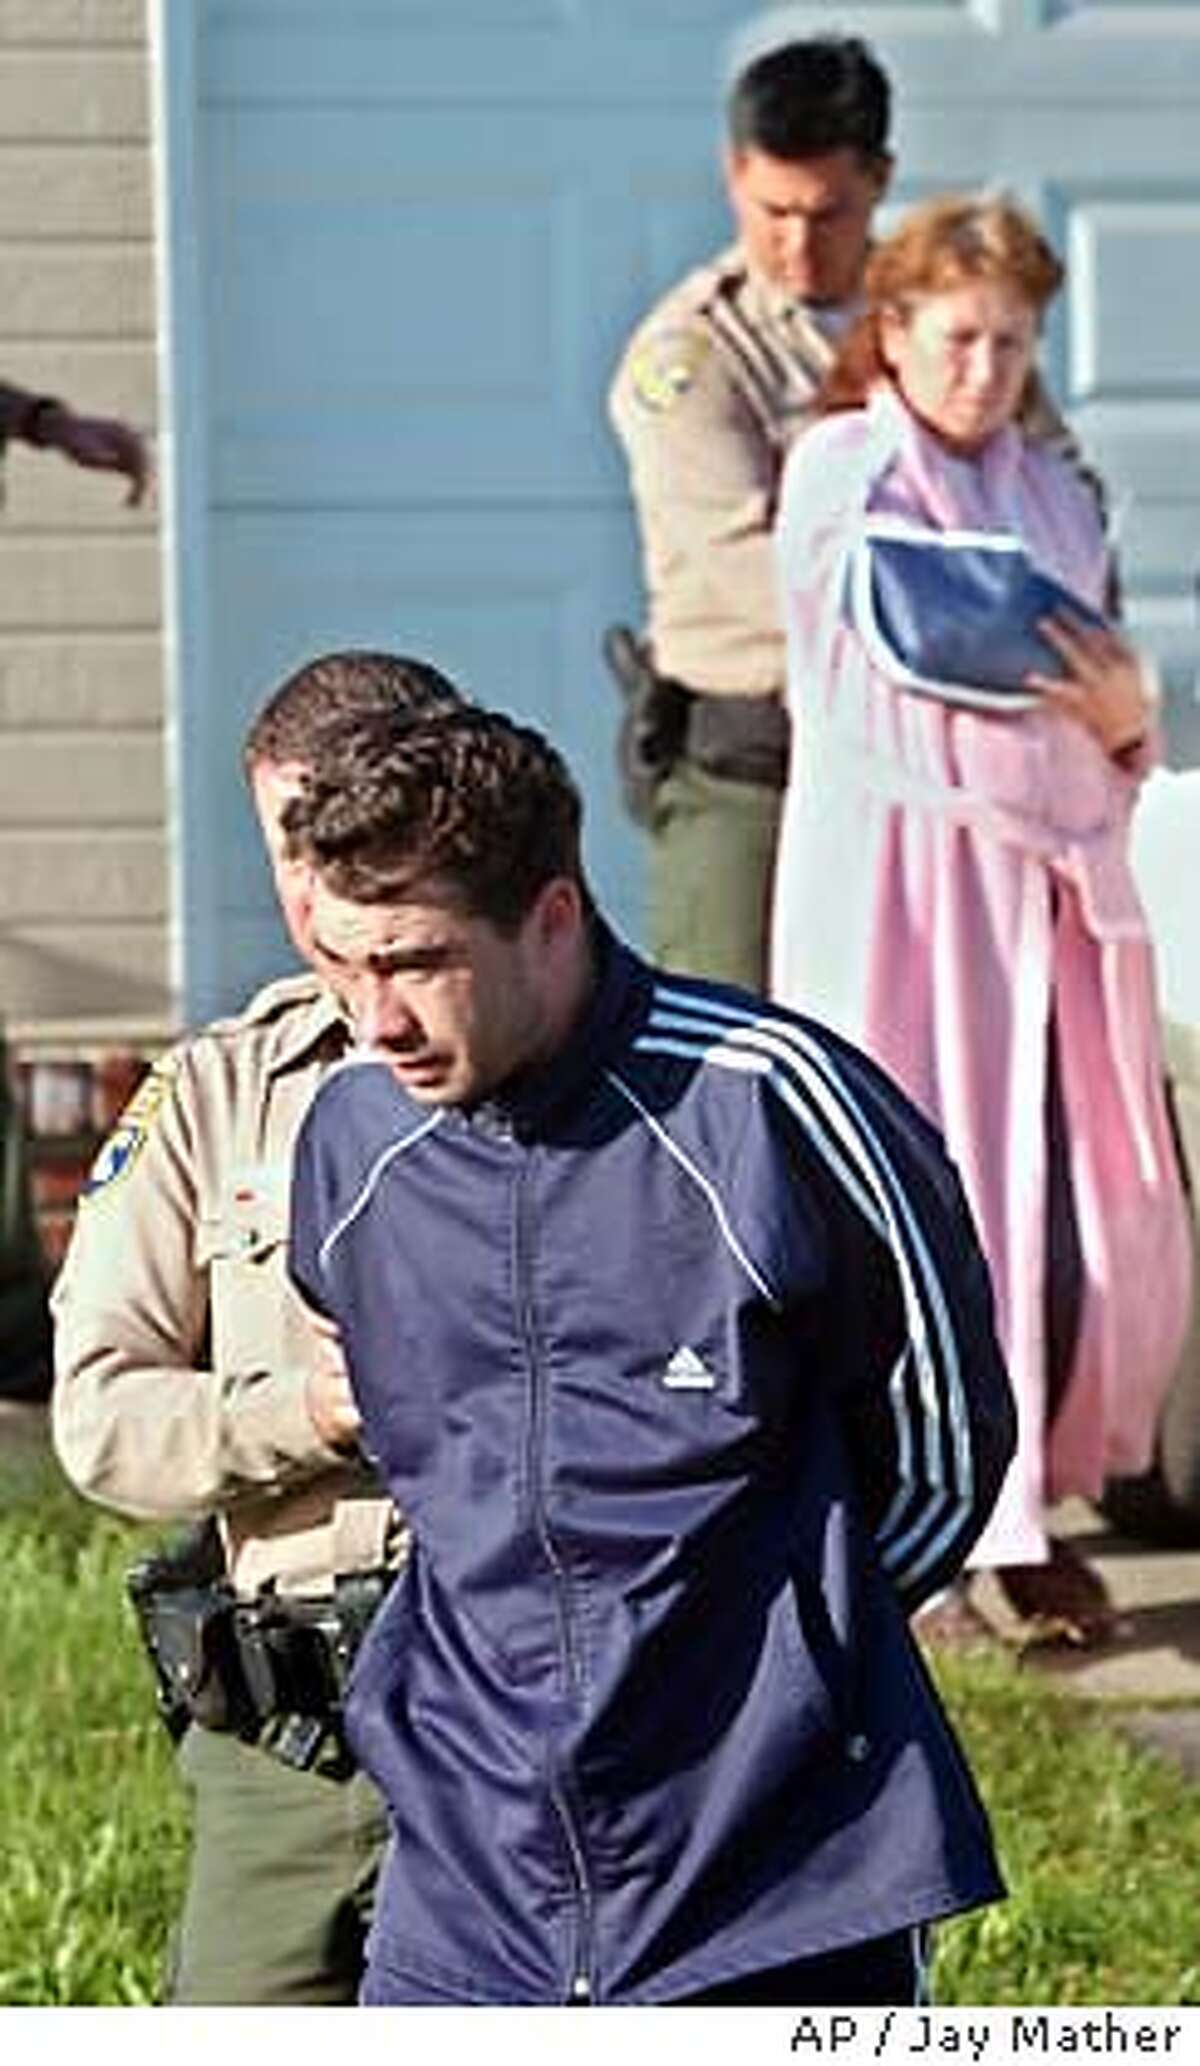 Yuriy Stanislavovich Bugriyev, 27, foreround-right, and Tamara Andreyevna Bugriyev, 51, background-right, wearing bathrobe, are taken into custody by California Department of Fish & Game wardens, Friday, May 9, 2003, in Fair Oaks, Calif. Federal and state wildlife officers broke up an alleged caviar poaching ring Friday, making 10 arrests, including that of the mother and son team shown here, as part of a three-state crackdown on illegal taking of giant white sturgeon from the Sacramento River. (AP Photo/Sacramento Bee, Jay Mather)